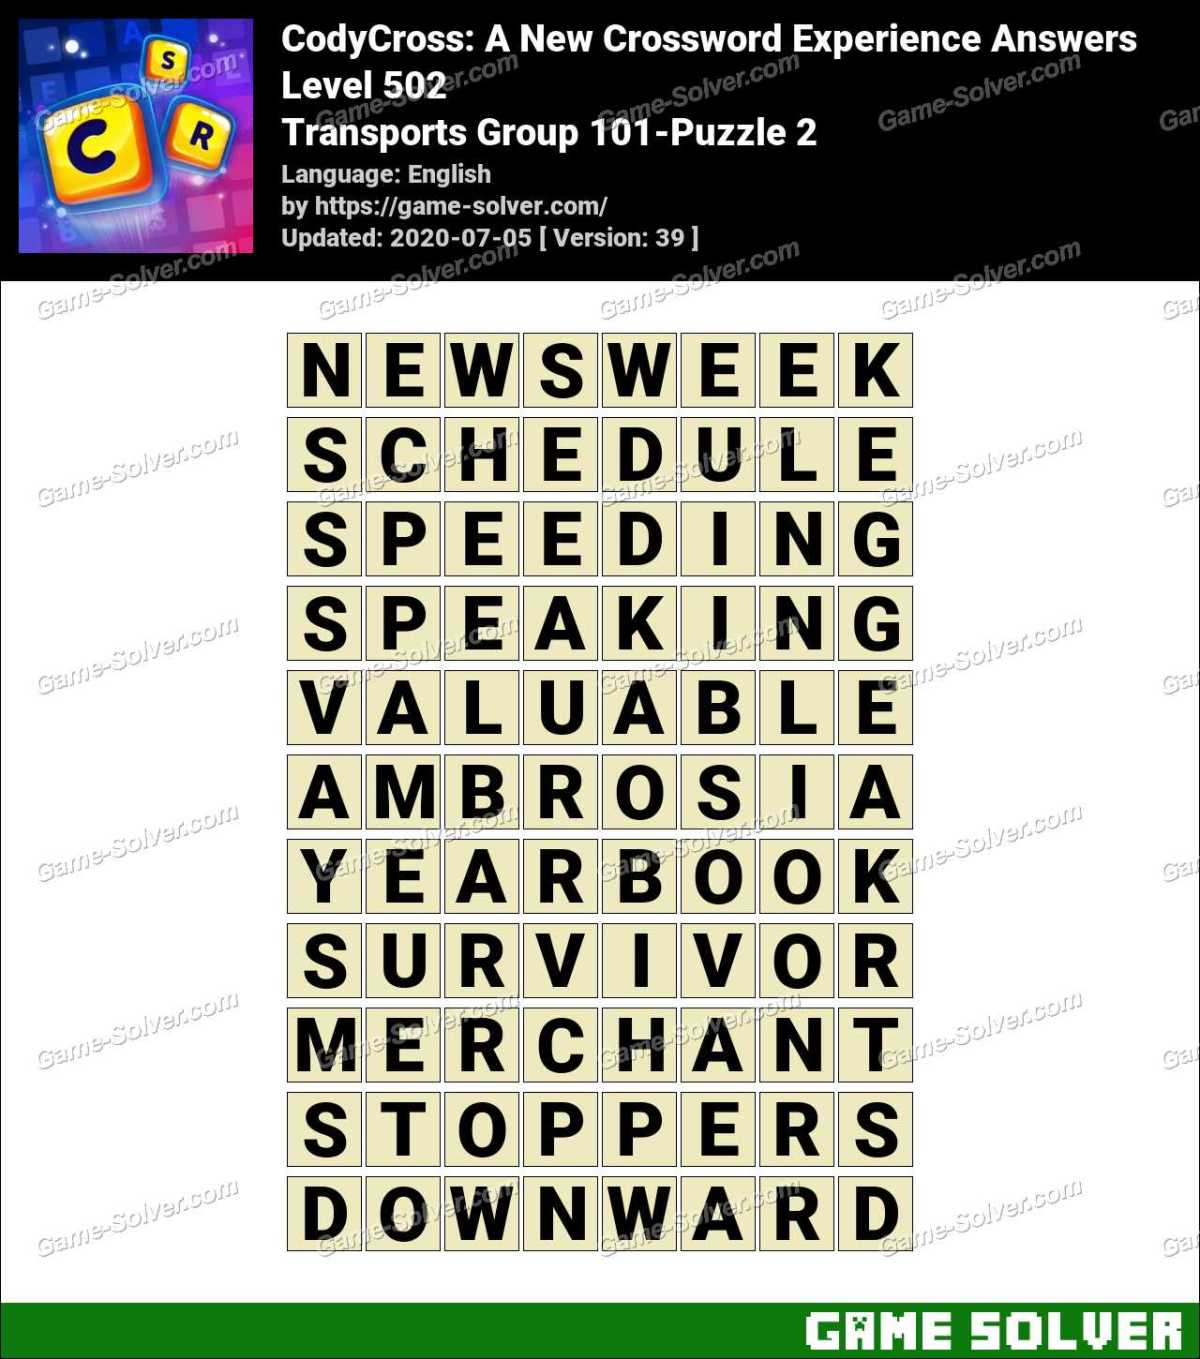 CodyCross Transports Group 101-Puzzle 2 Answers